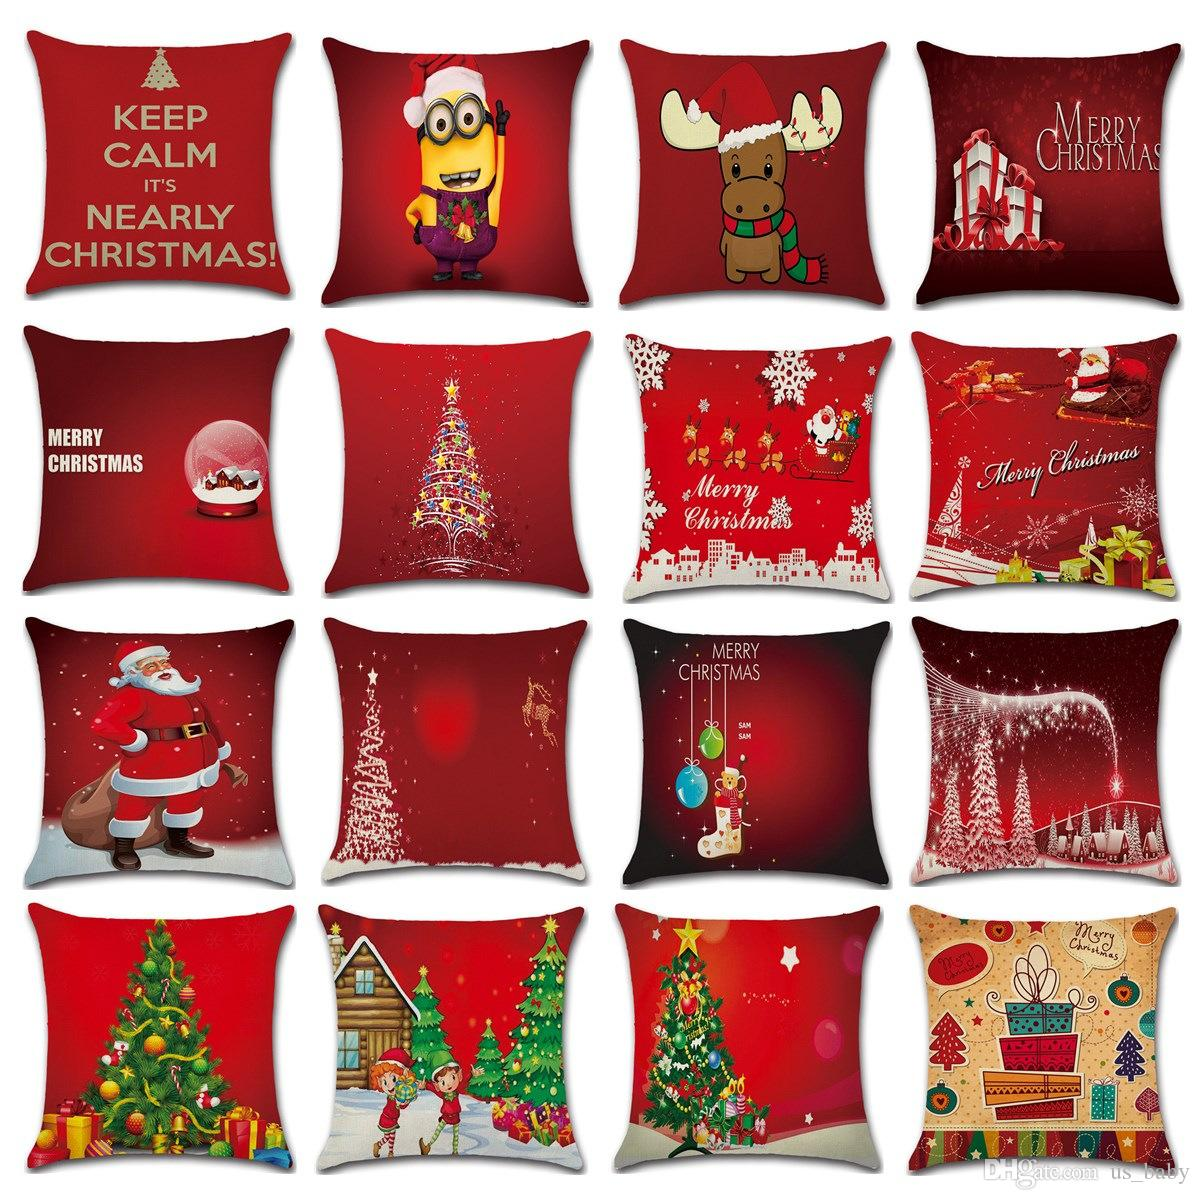 red christmas pillows case xmas new year christmas treesanta clauselk cushion covers car office home decorative pillow cover 16styles pillow for babies